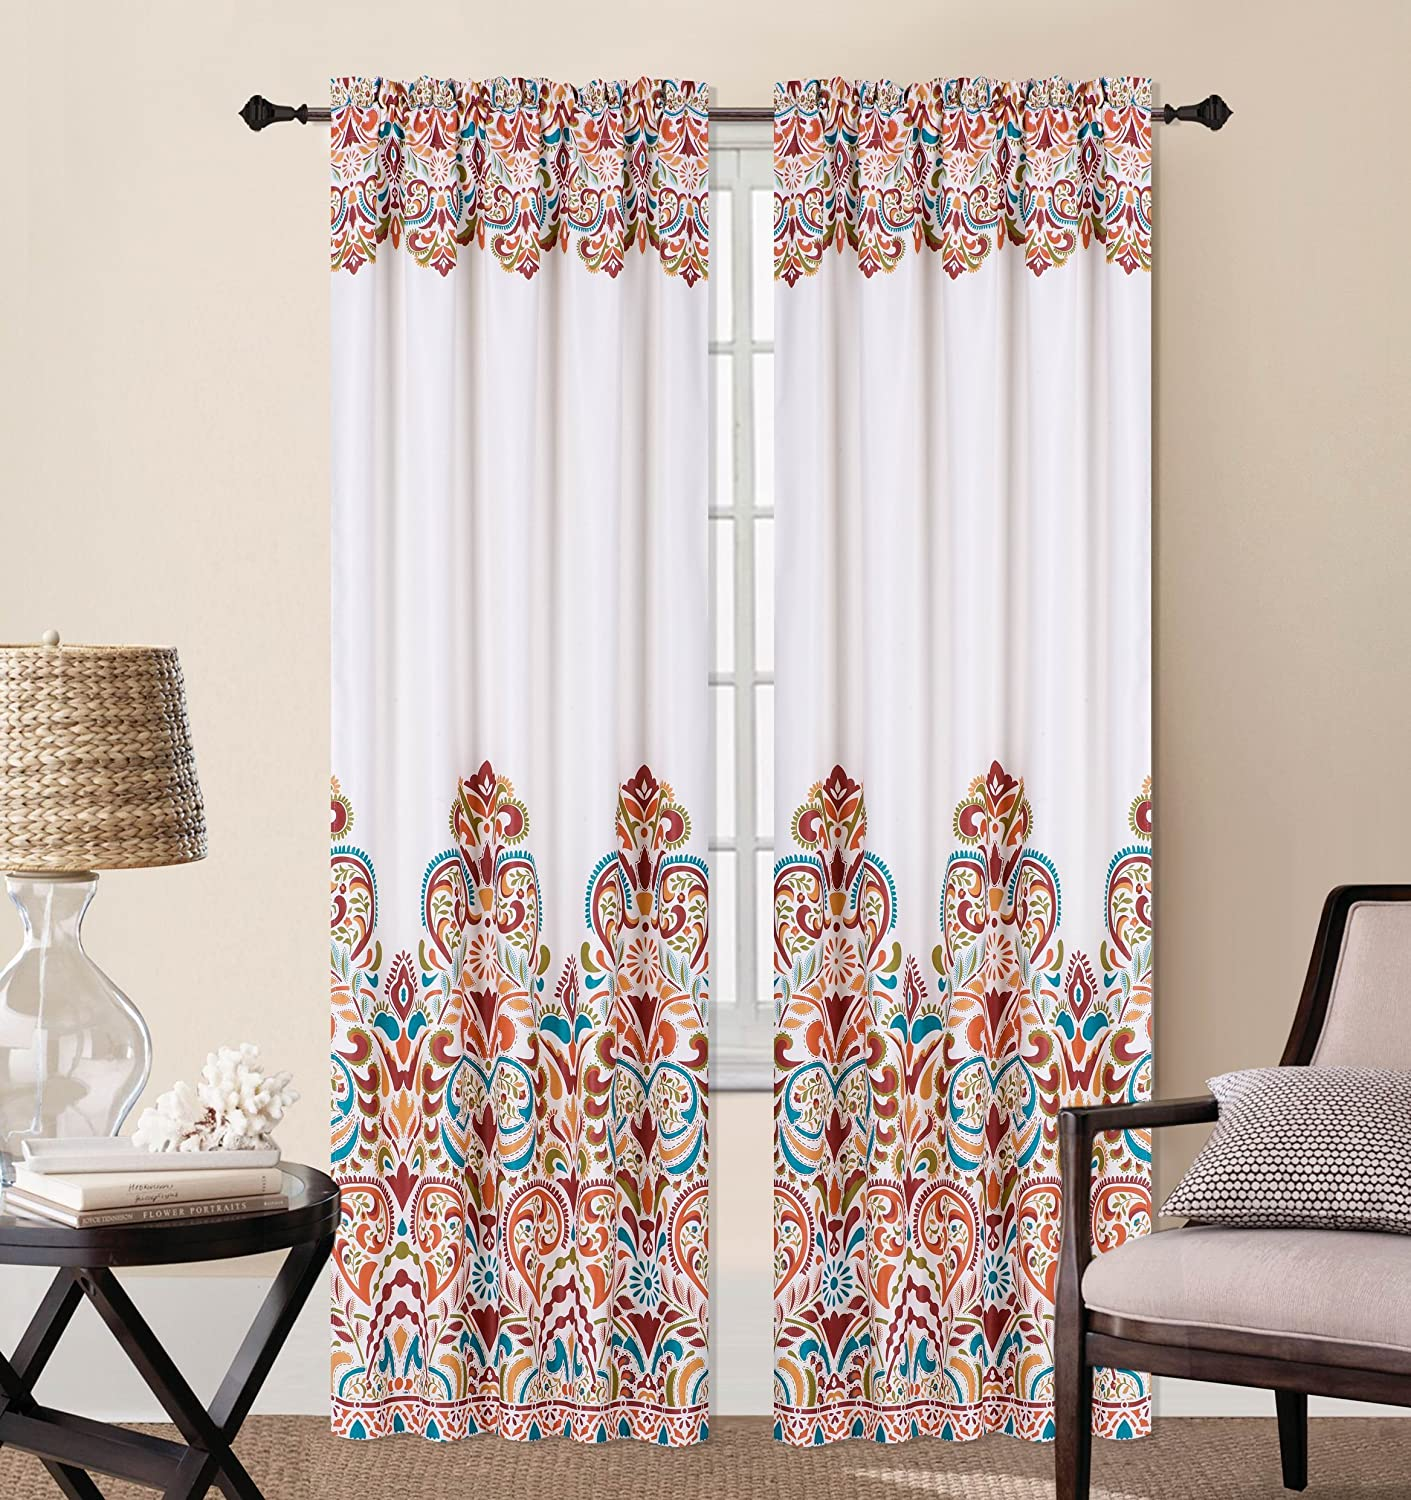 Luxury Discounts 2 Piece Colorful Room Darkening Window Curtain Panel Drapes Turquoise/Orange